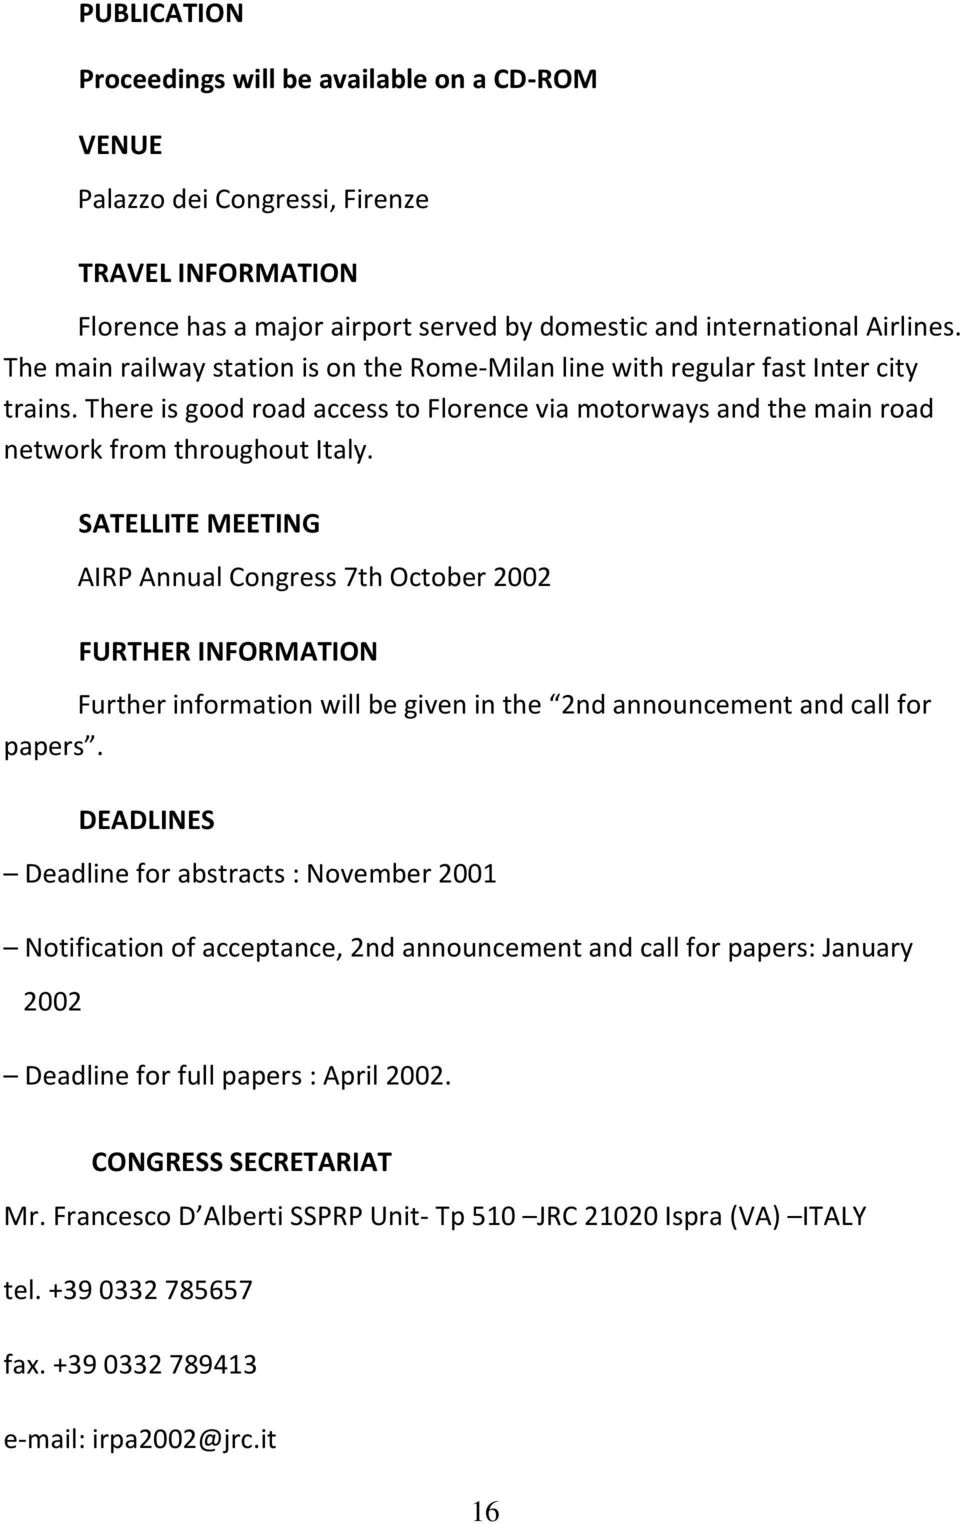 SATELLITE MEETING AIRP Annual Congress 7th October 2002 FURTHER INFORMATION Further information will be given in the 2nd announcement and call for papers.